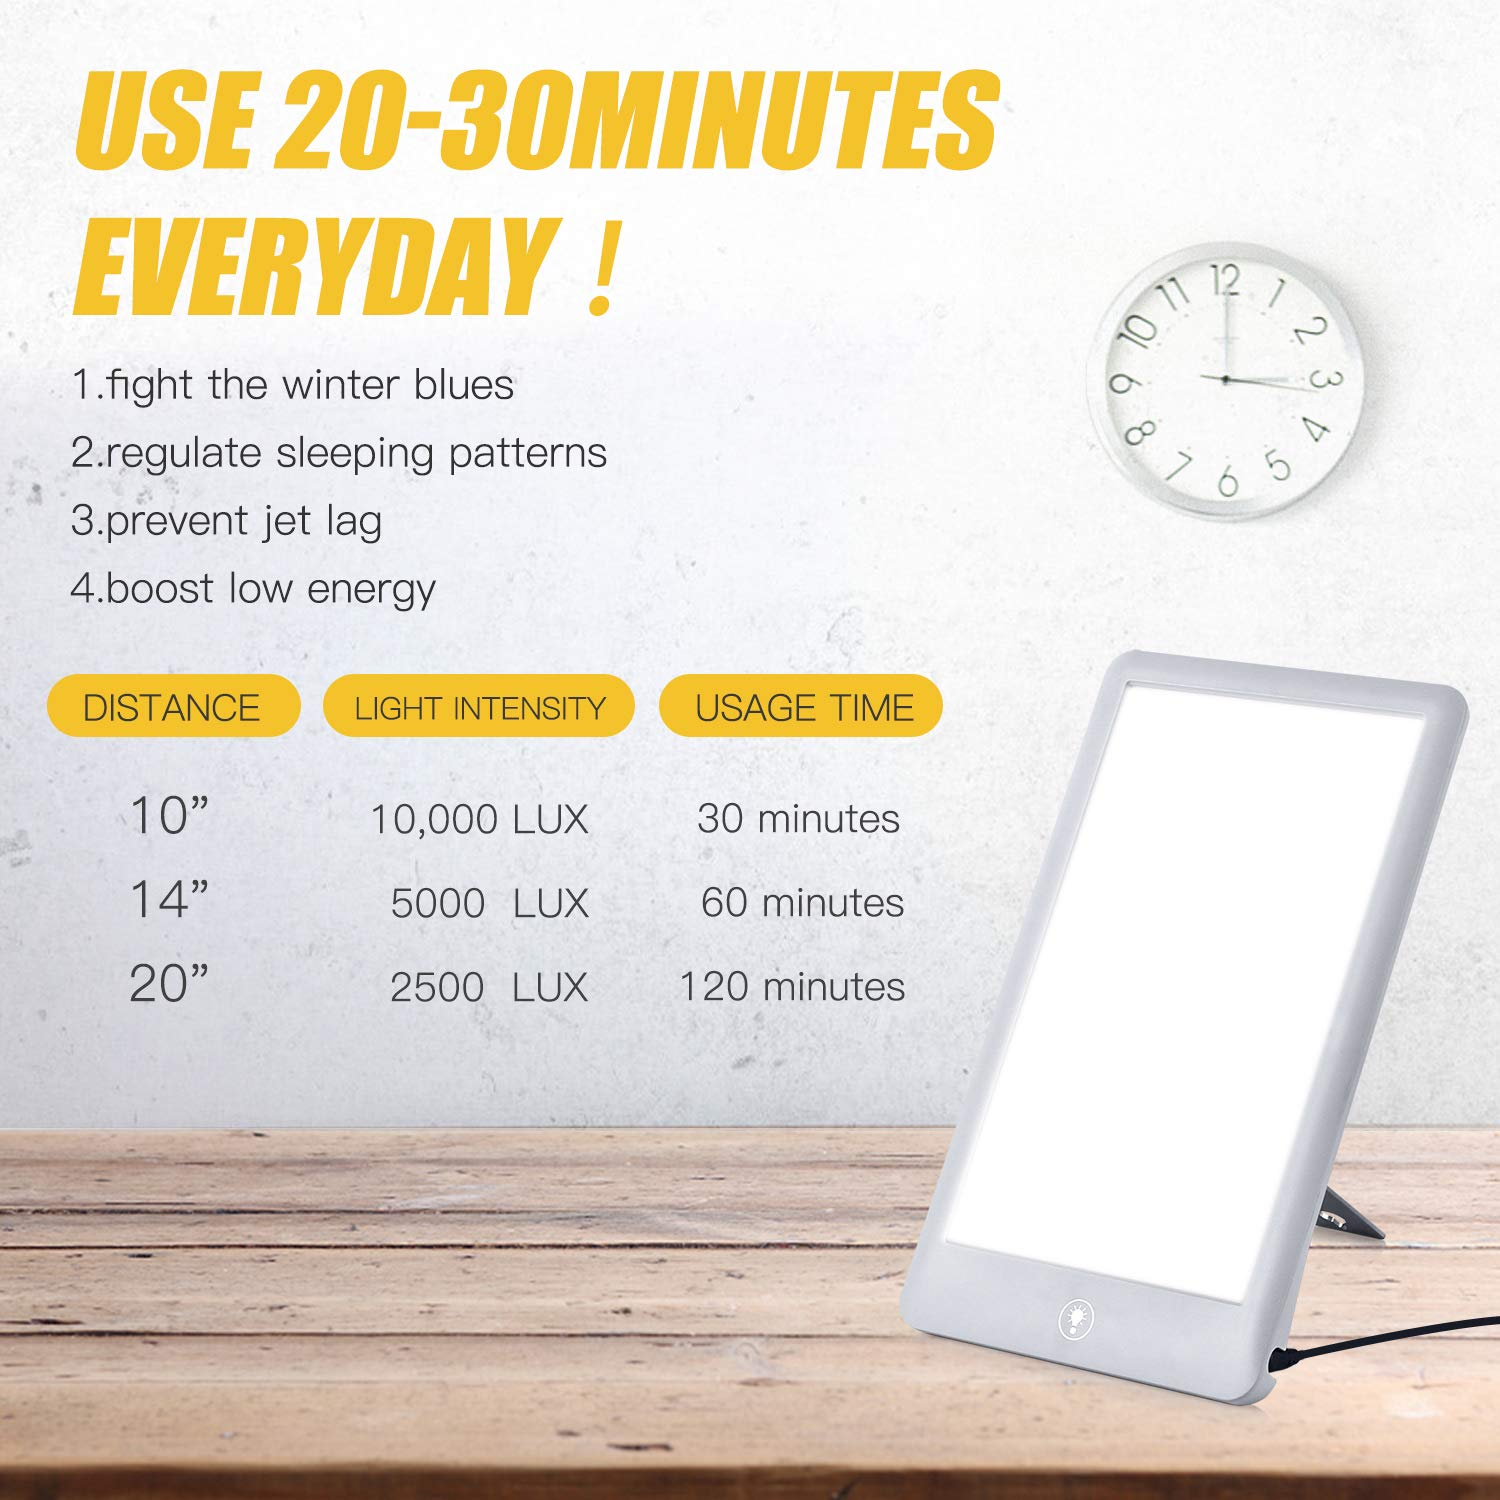 Light Therapy Lamp, 3 Brightness Levels Light Therapy Energy Box, Full Spectrum UV Free & Touch Control, Portable Sun Lamps for Happy Life, Max 32,000 LUX, White by sakobs (Image #3)